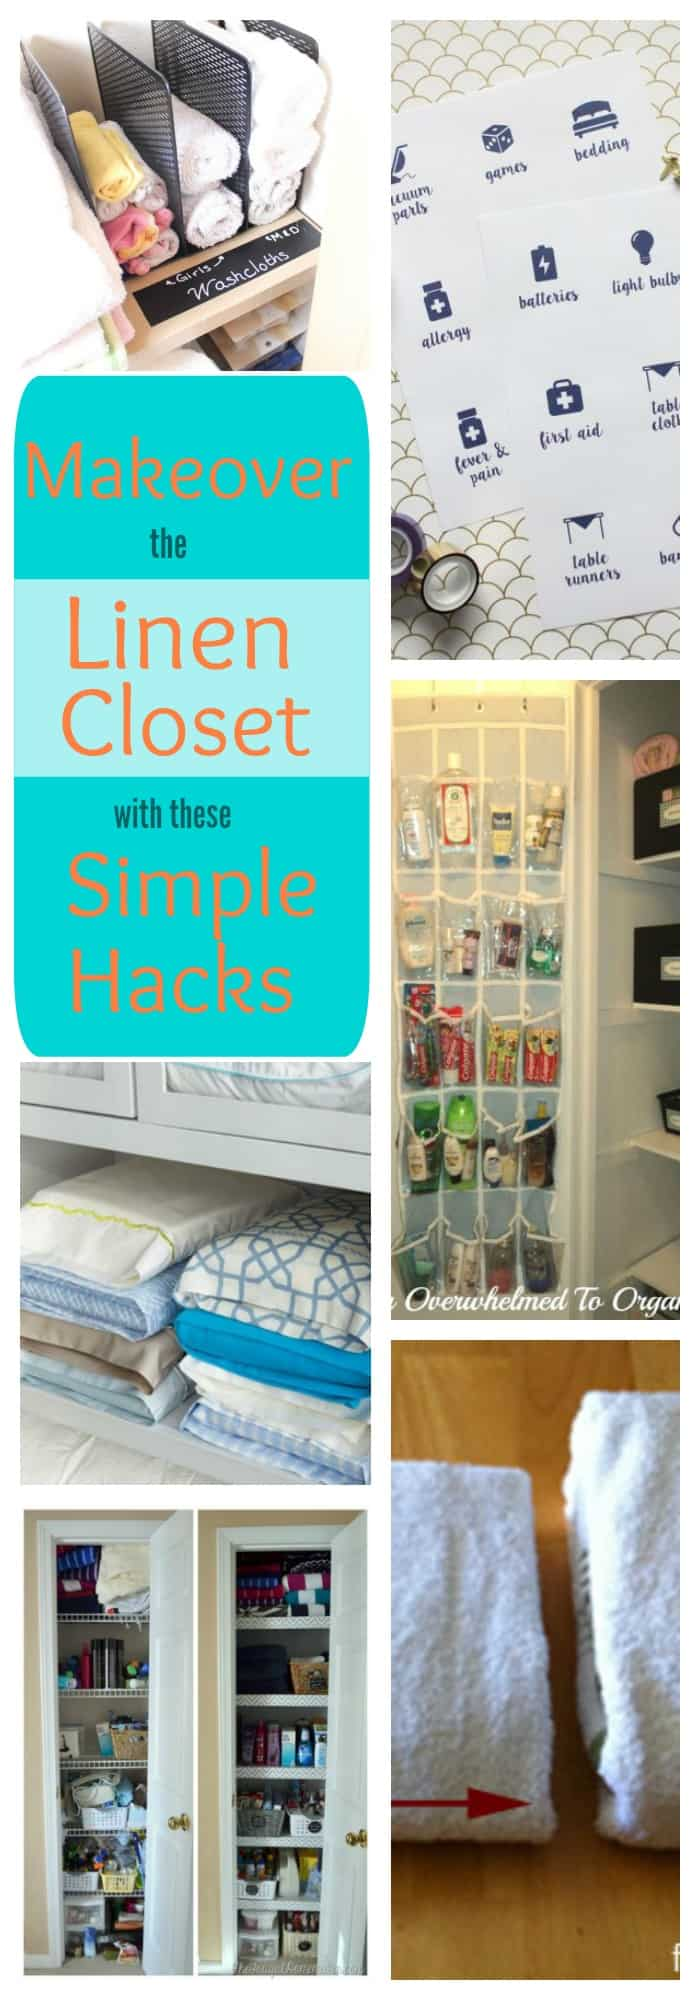 Jump Start Your New Year's Resolution: Make Over Your Linen Closet